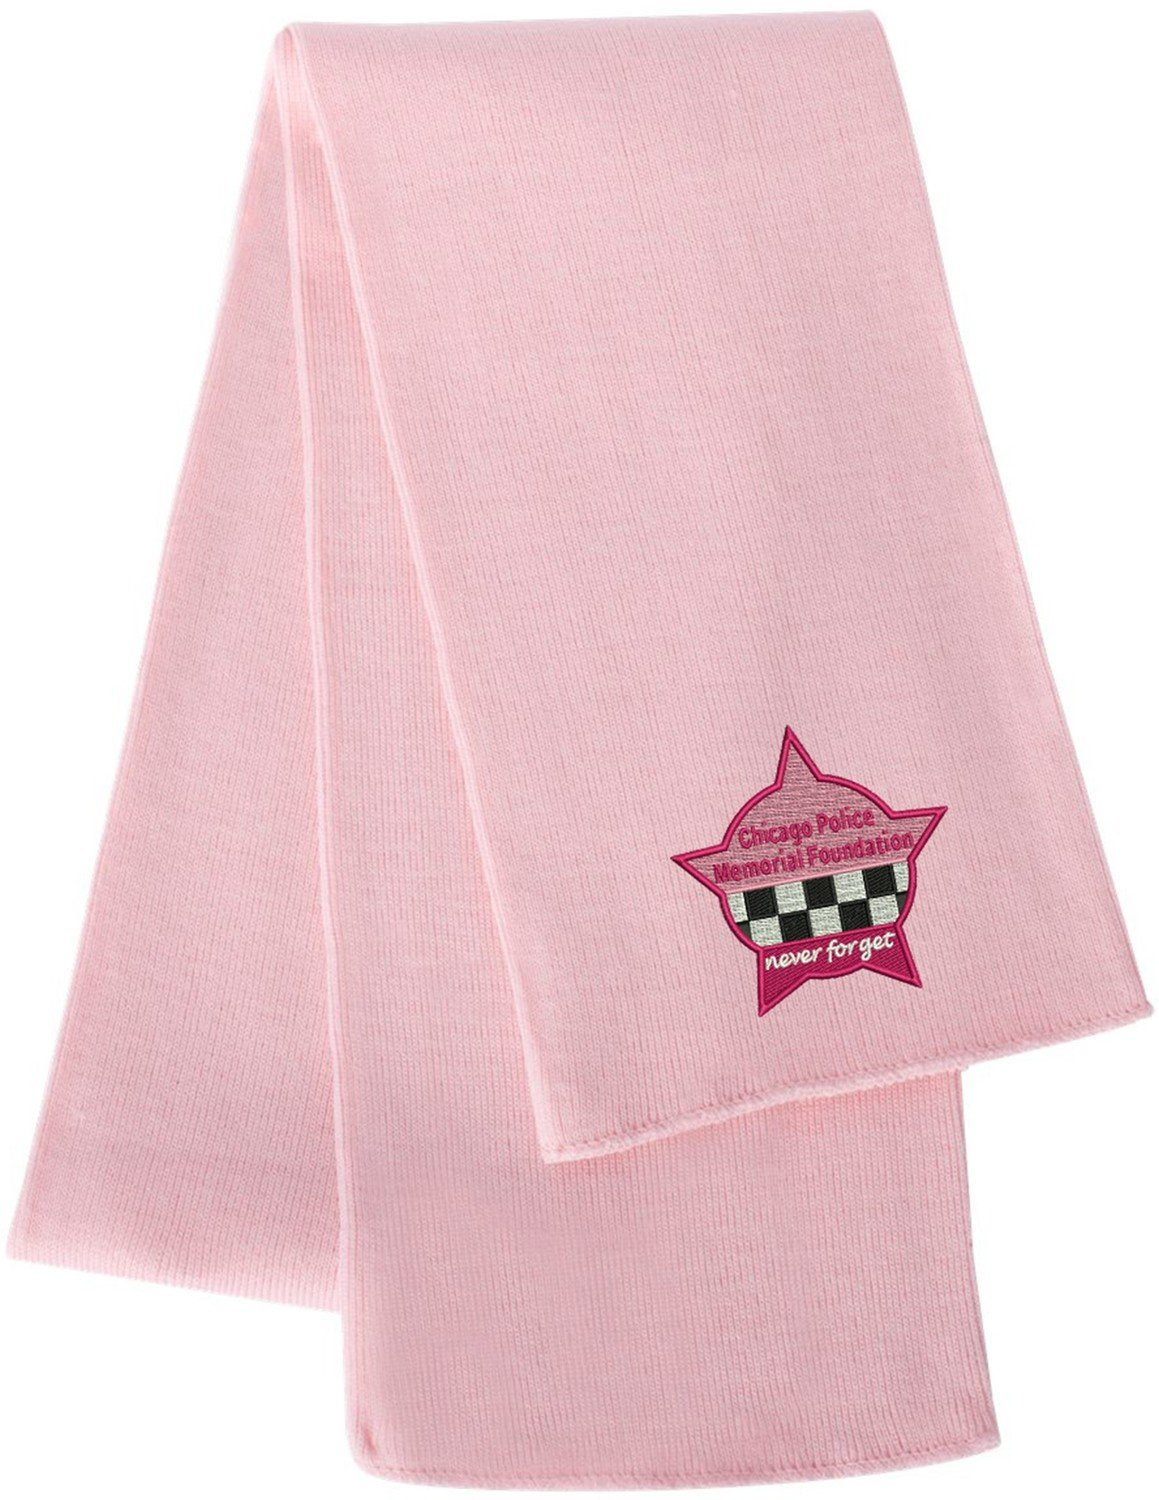 CPD Memorial Knit Scarf Pink Star